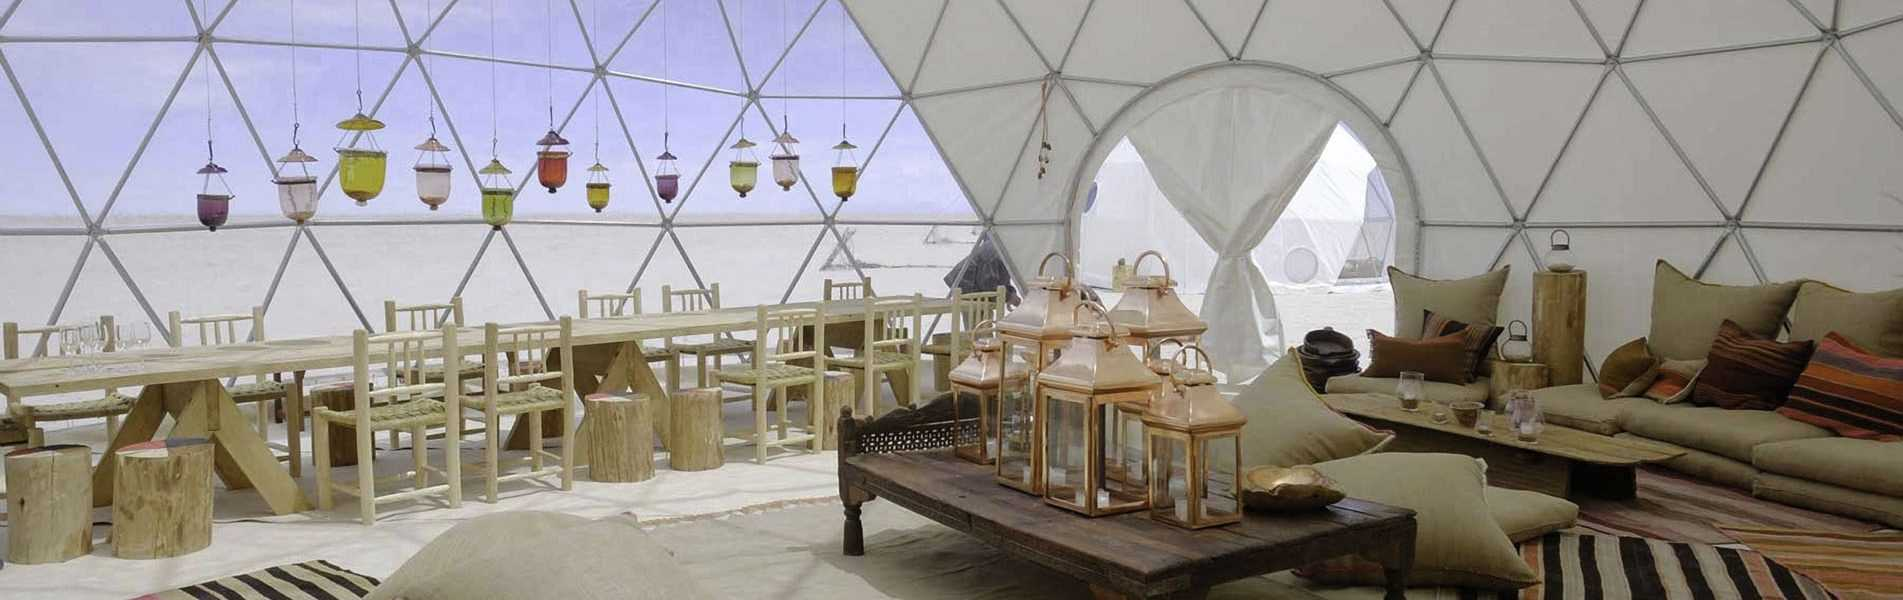 Glamping Dome - Pacific Domes